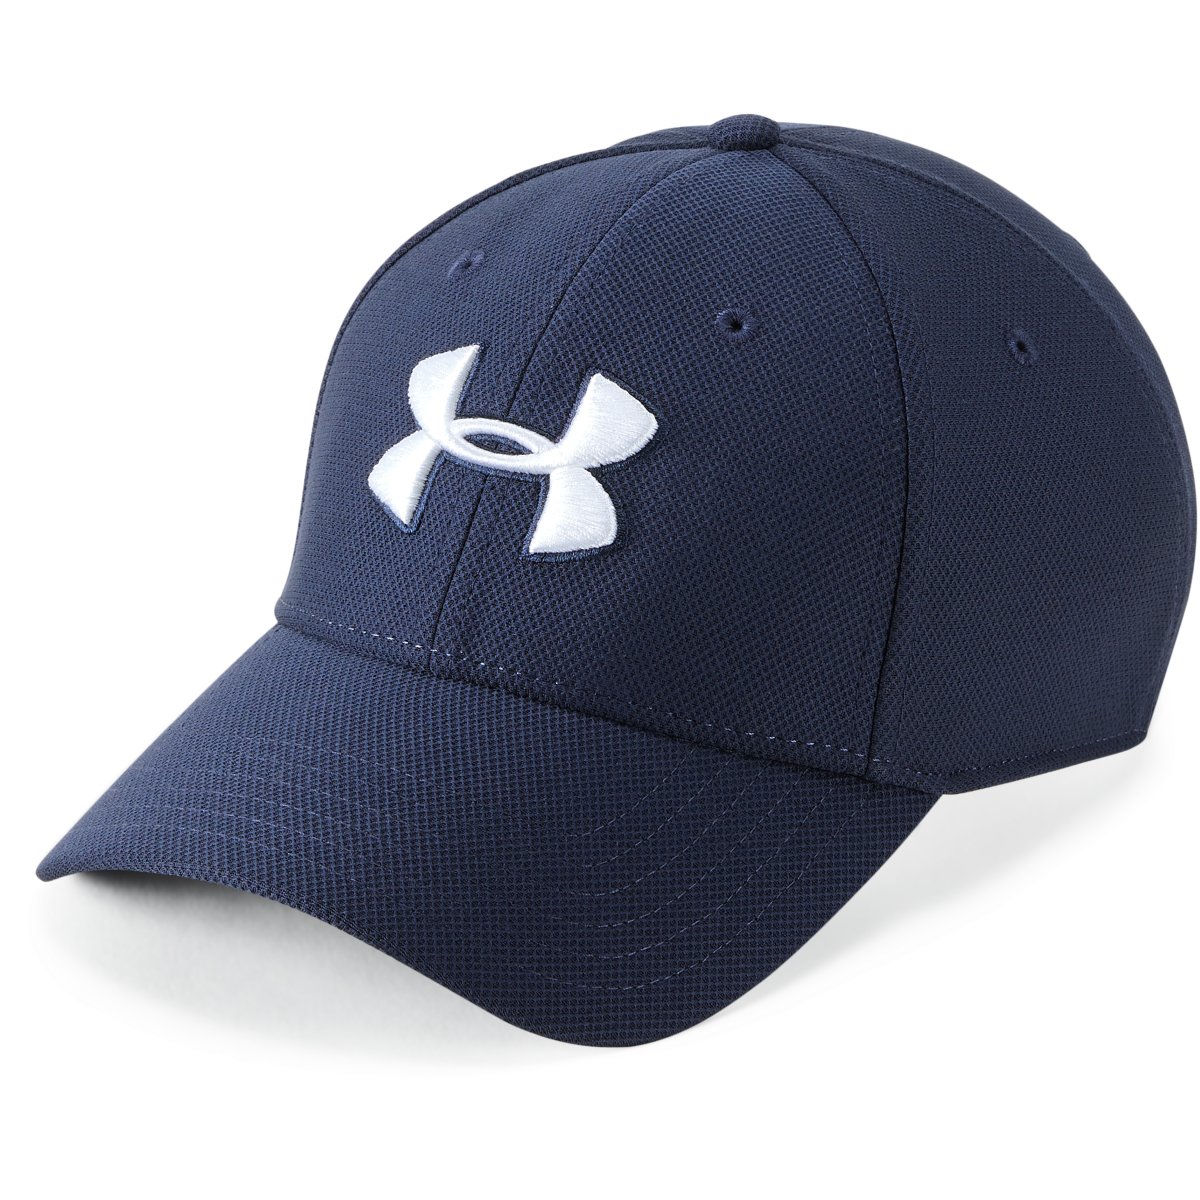 Image of Casquette Under Armour Blitzing 3.0 - One Size Midnight Navy/White